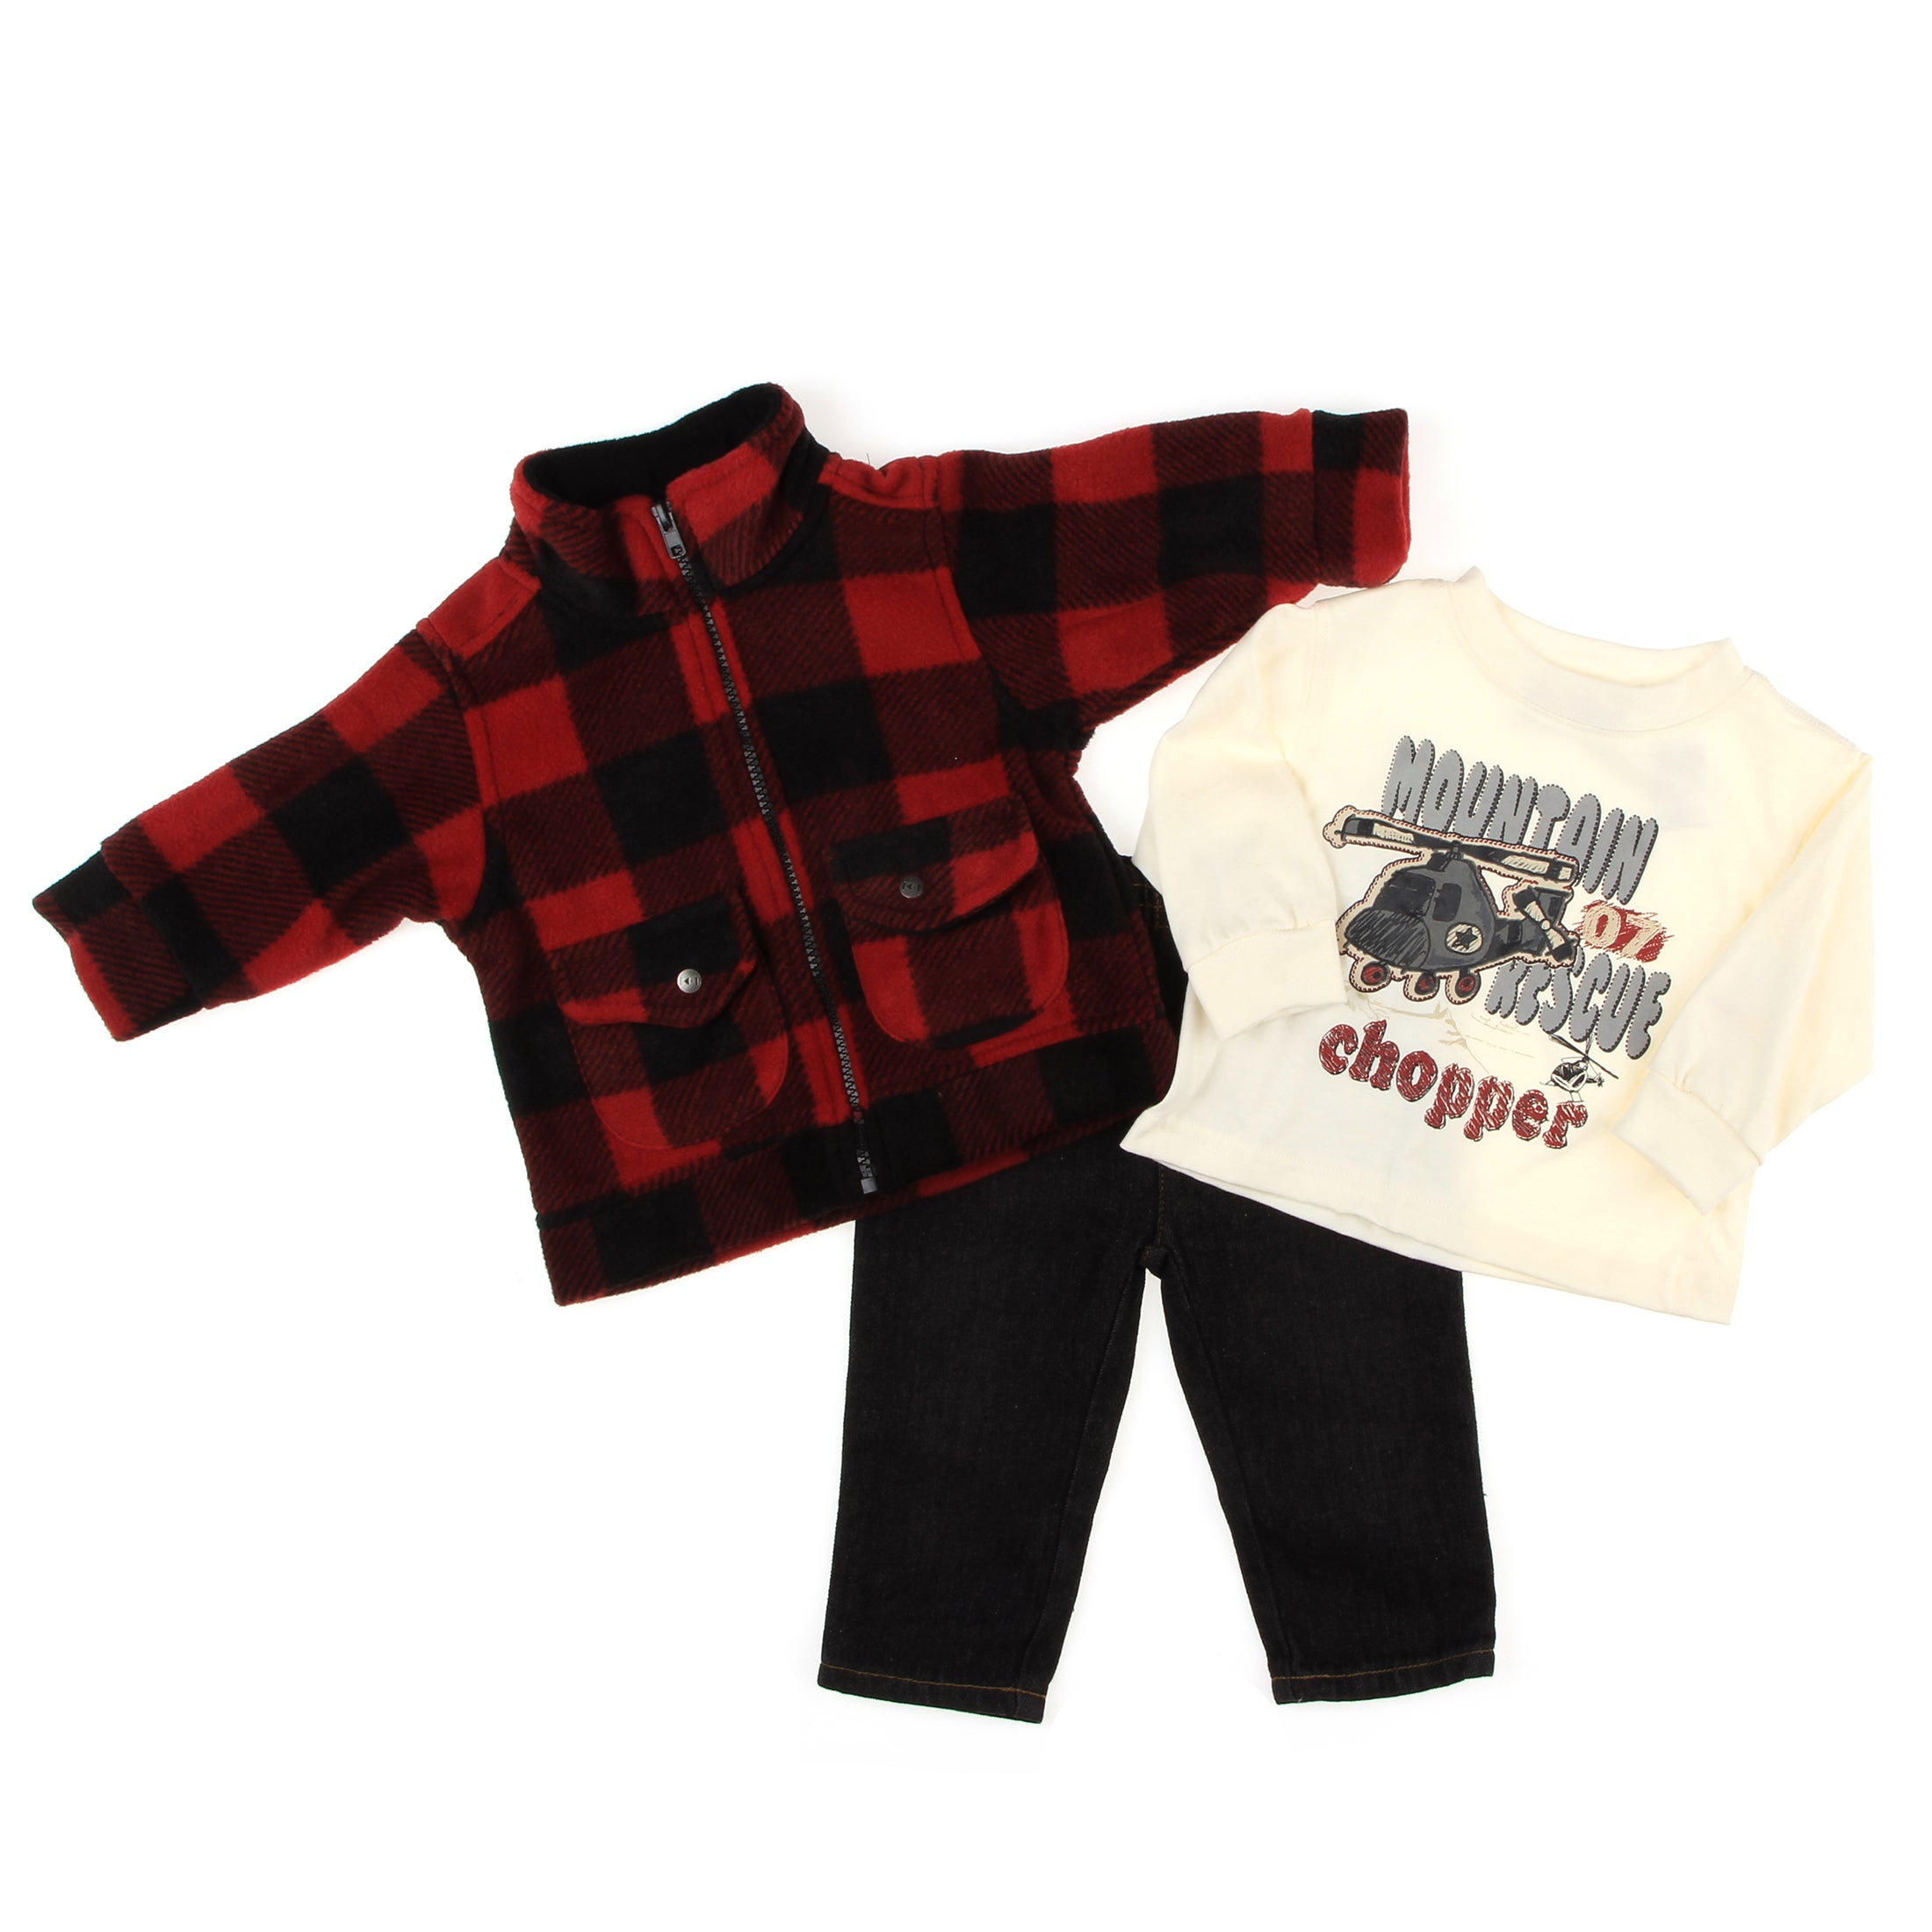 Kids Headquarters Infant Boy's Plaid 3-piece Set Final Sa...